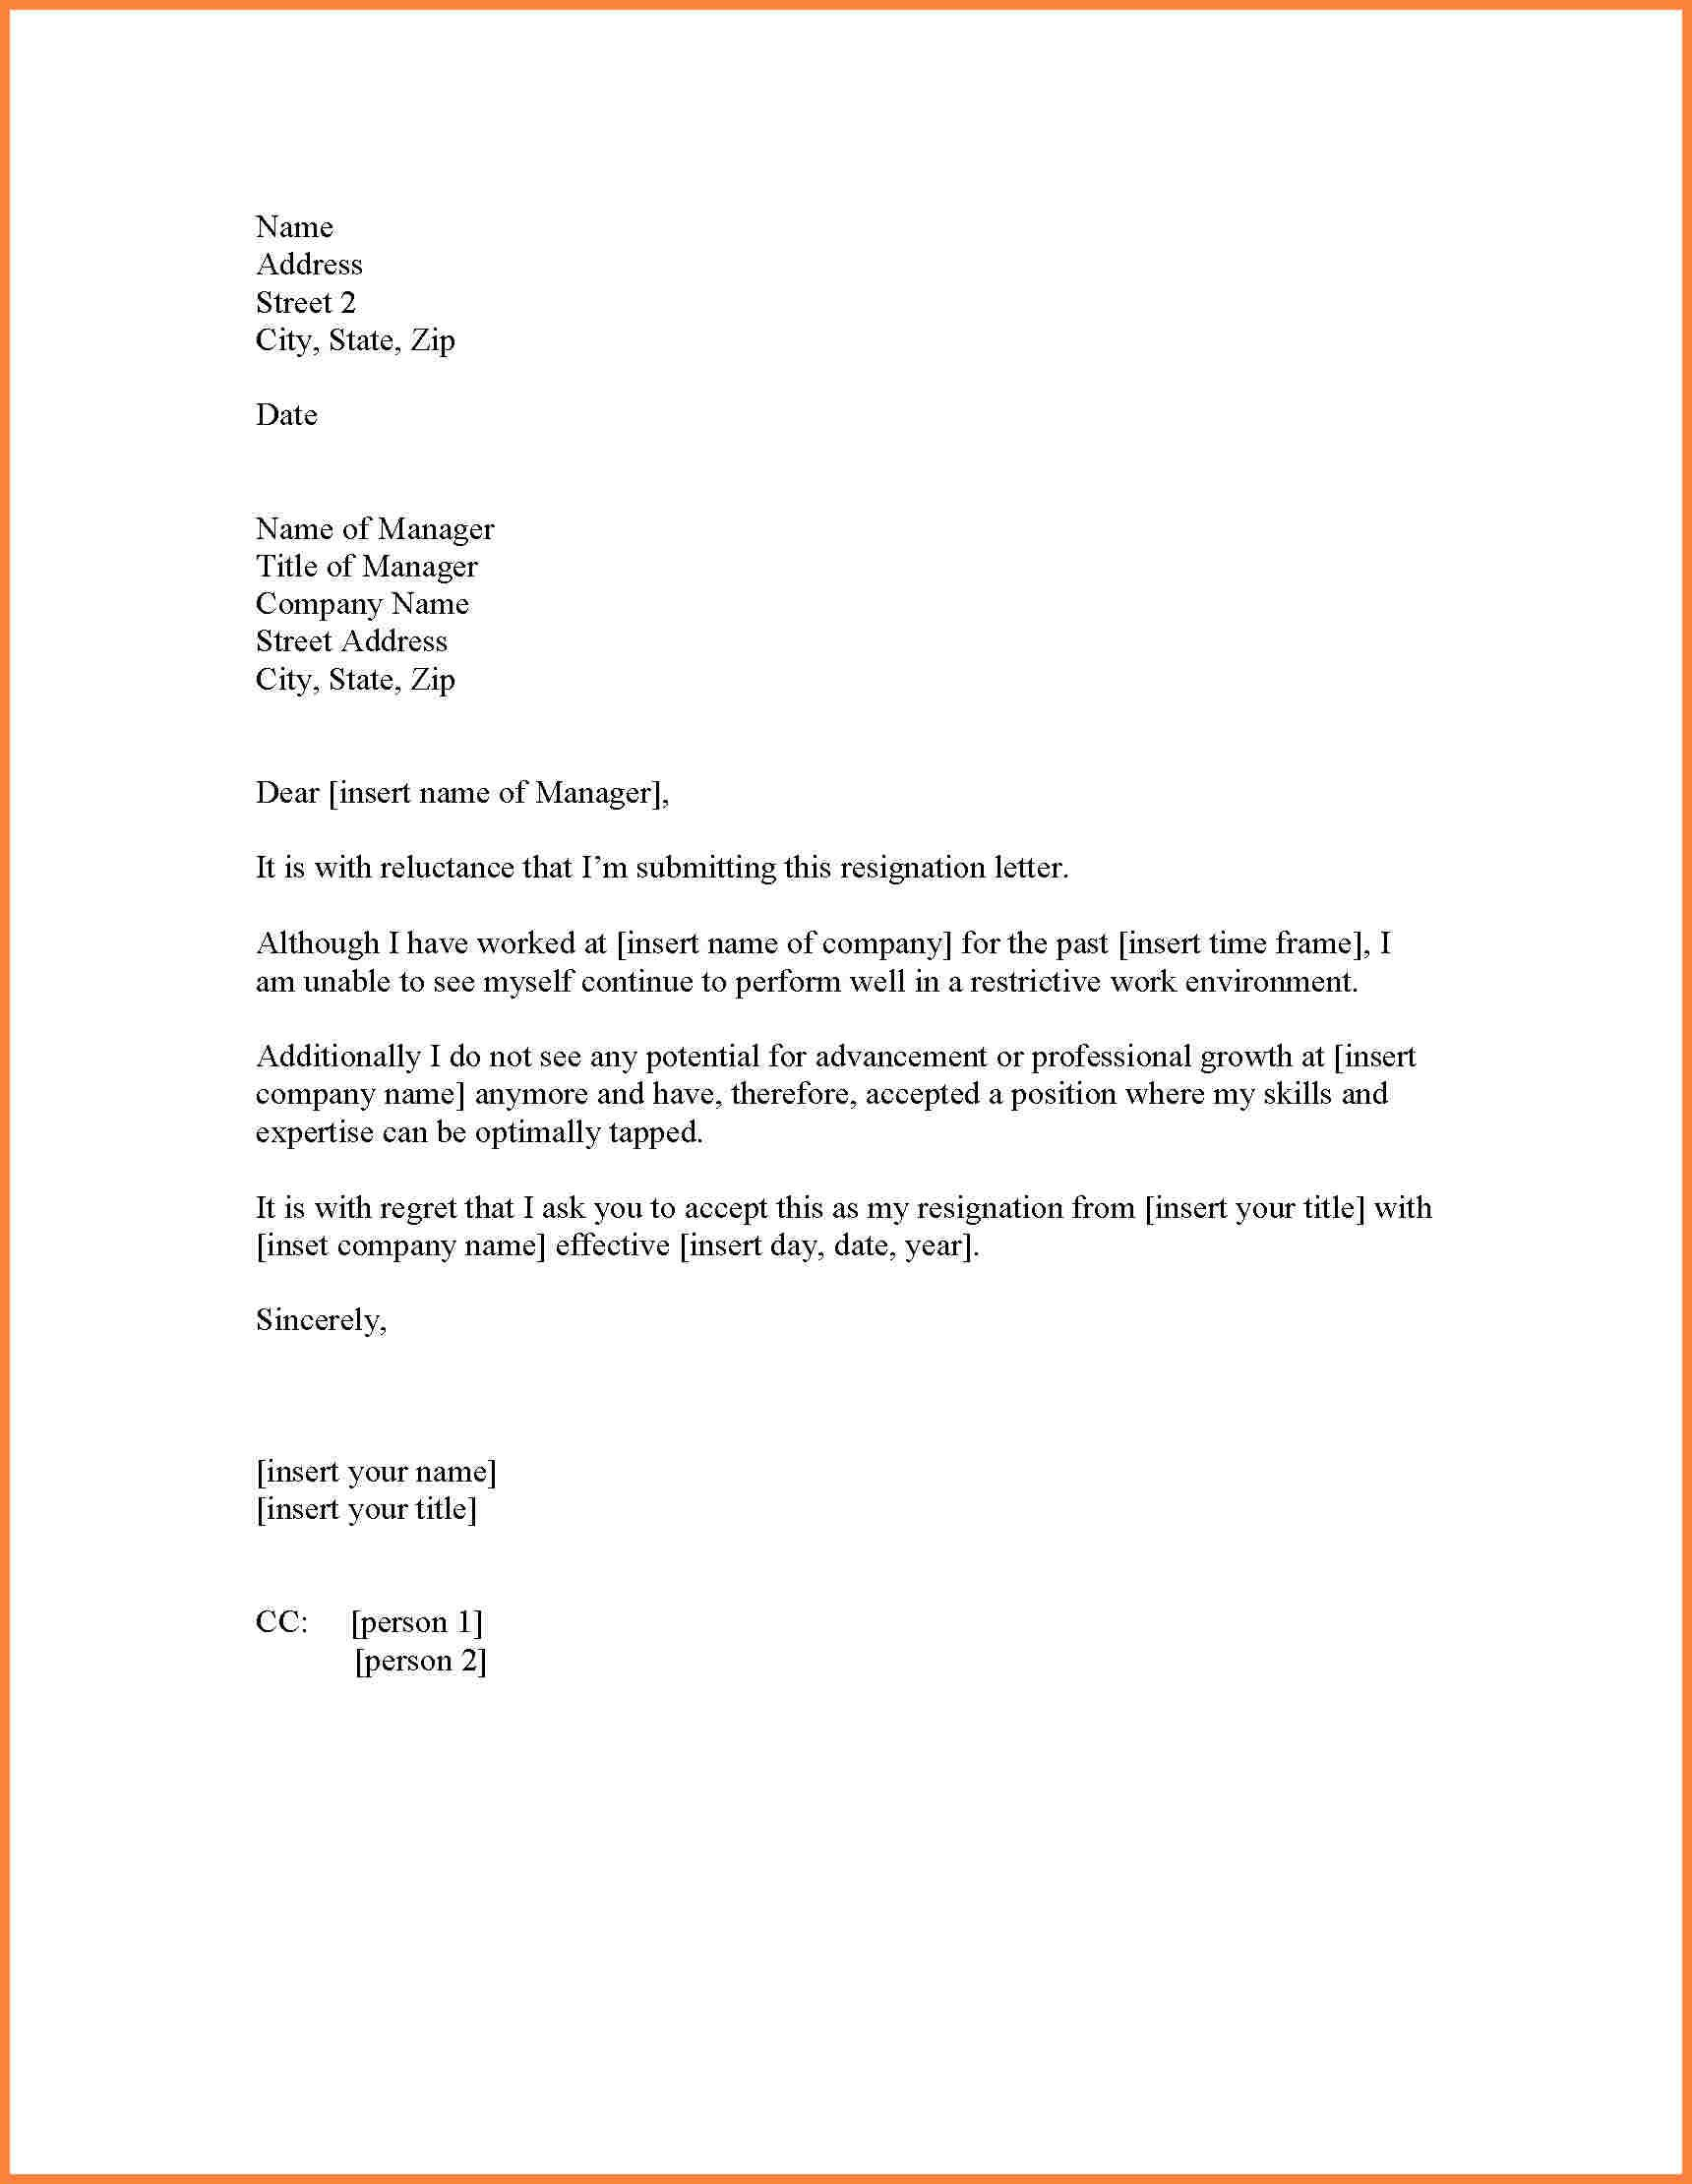 Best resignation letter for personal reasons resignation letter for best resignation letter for personal reasons resignation letter for personal reasons the legal profession depends on clear and exact language cover letter altavistaventures Choice Image